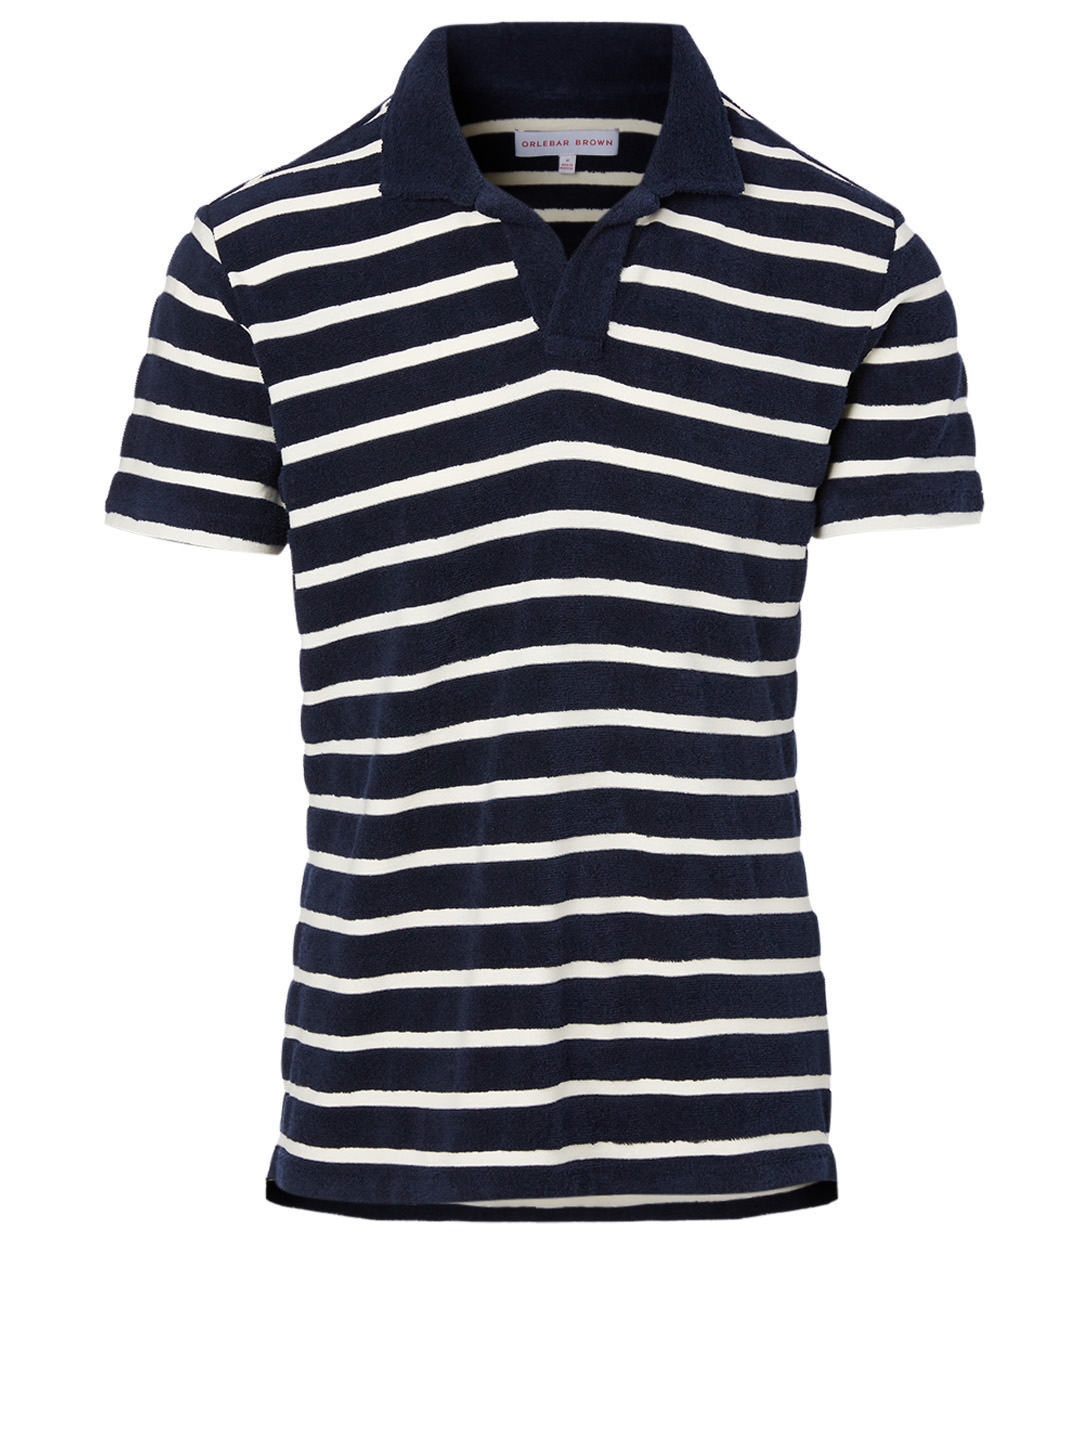 ORLEBAR BROWN Striped Terry Towelling Resort Polo Shirt Men's Blue